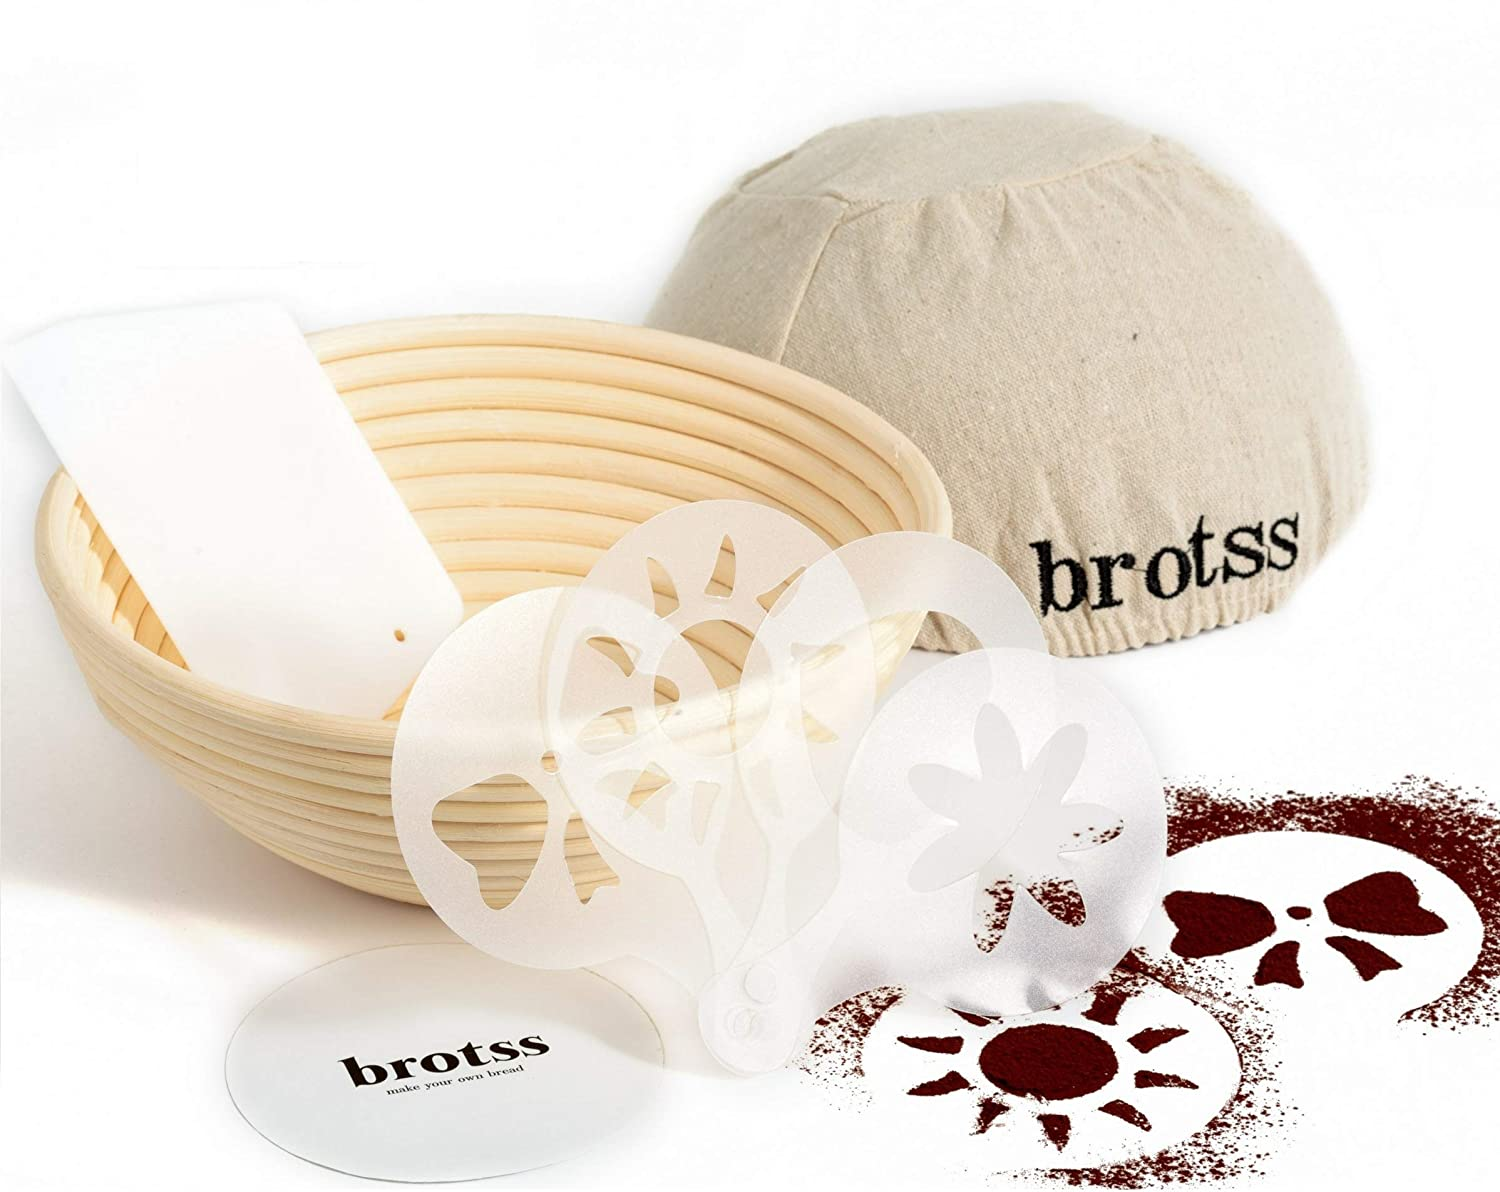 14 items Banneton Proofing Basket Set with 10 Artisan Bread Stencils, Cloth Liner Linen, Bowl Scraper for All Bakers/Sourdough Recipe, Brotform Rising Making Round Baked Crispy Dough Crust Boules Loaf brotss